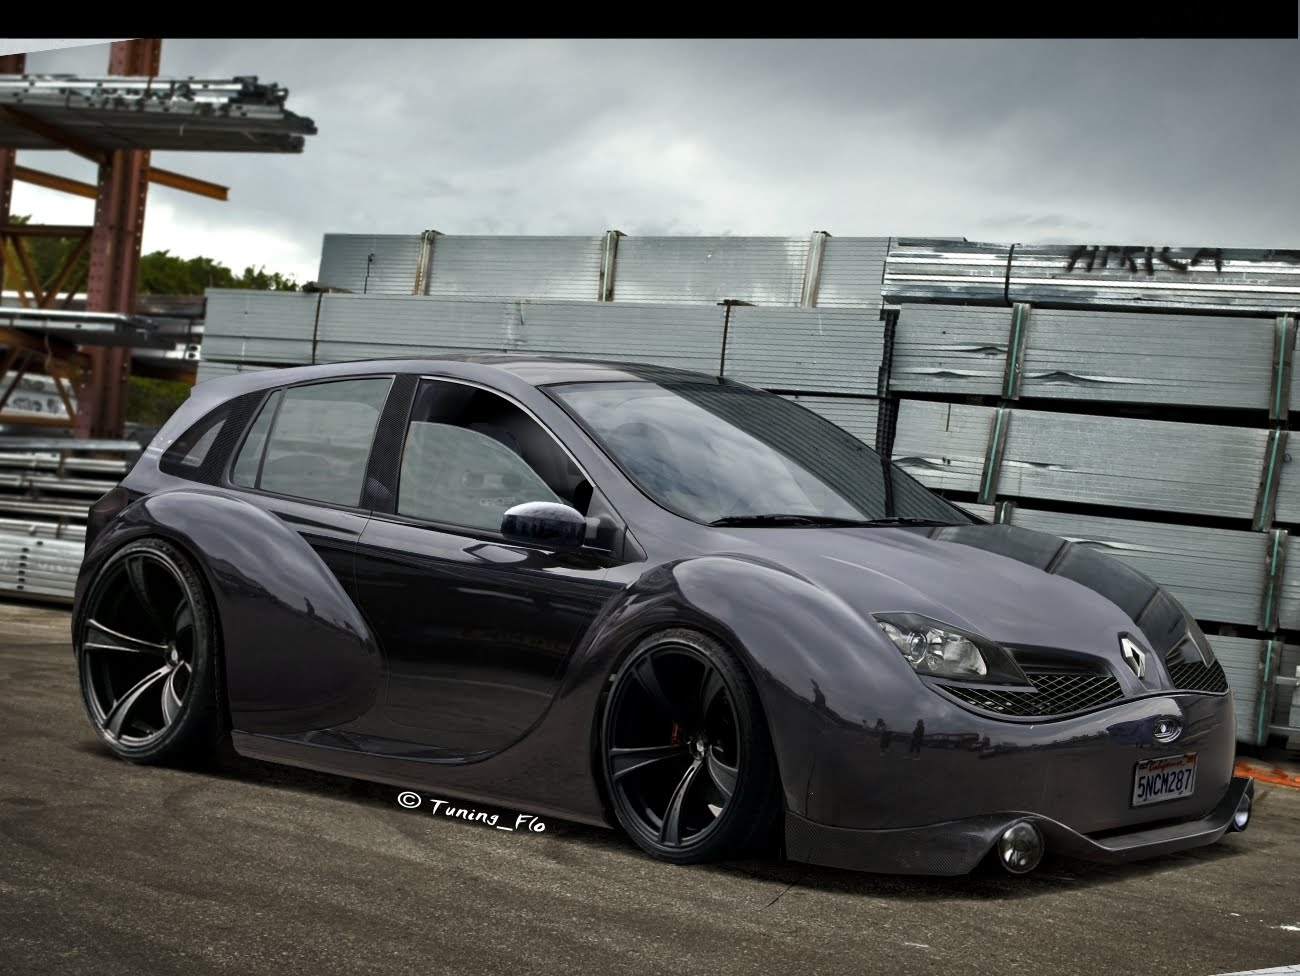 Auto Cars Project Renault Clio Tuning